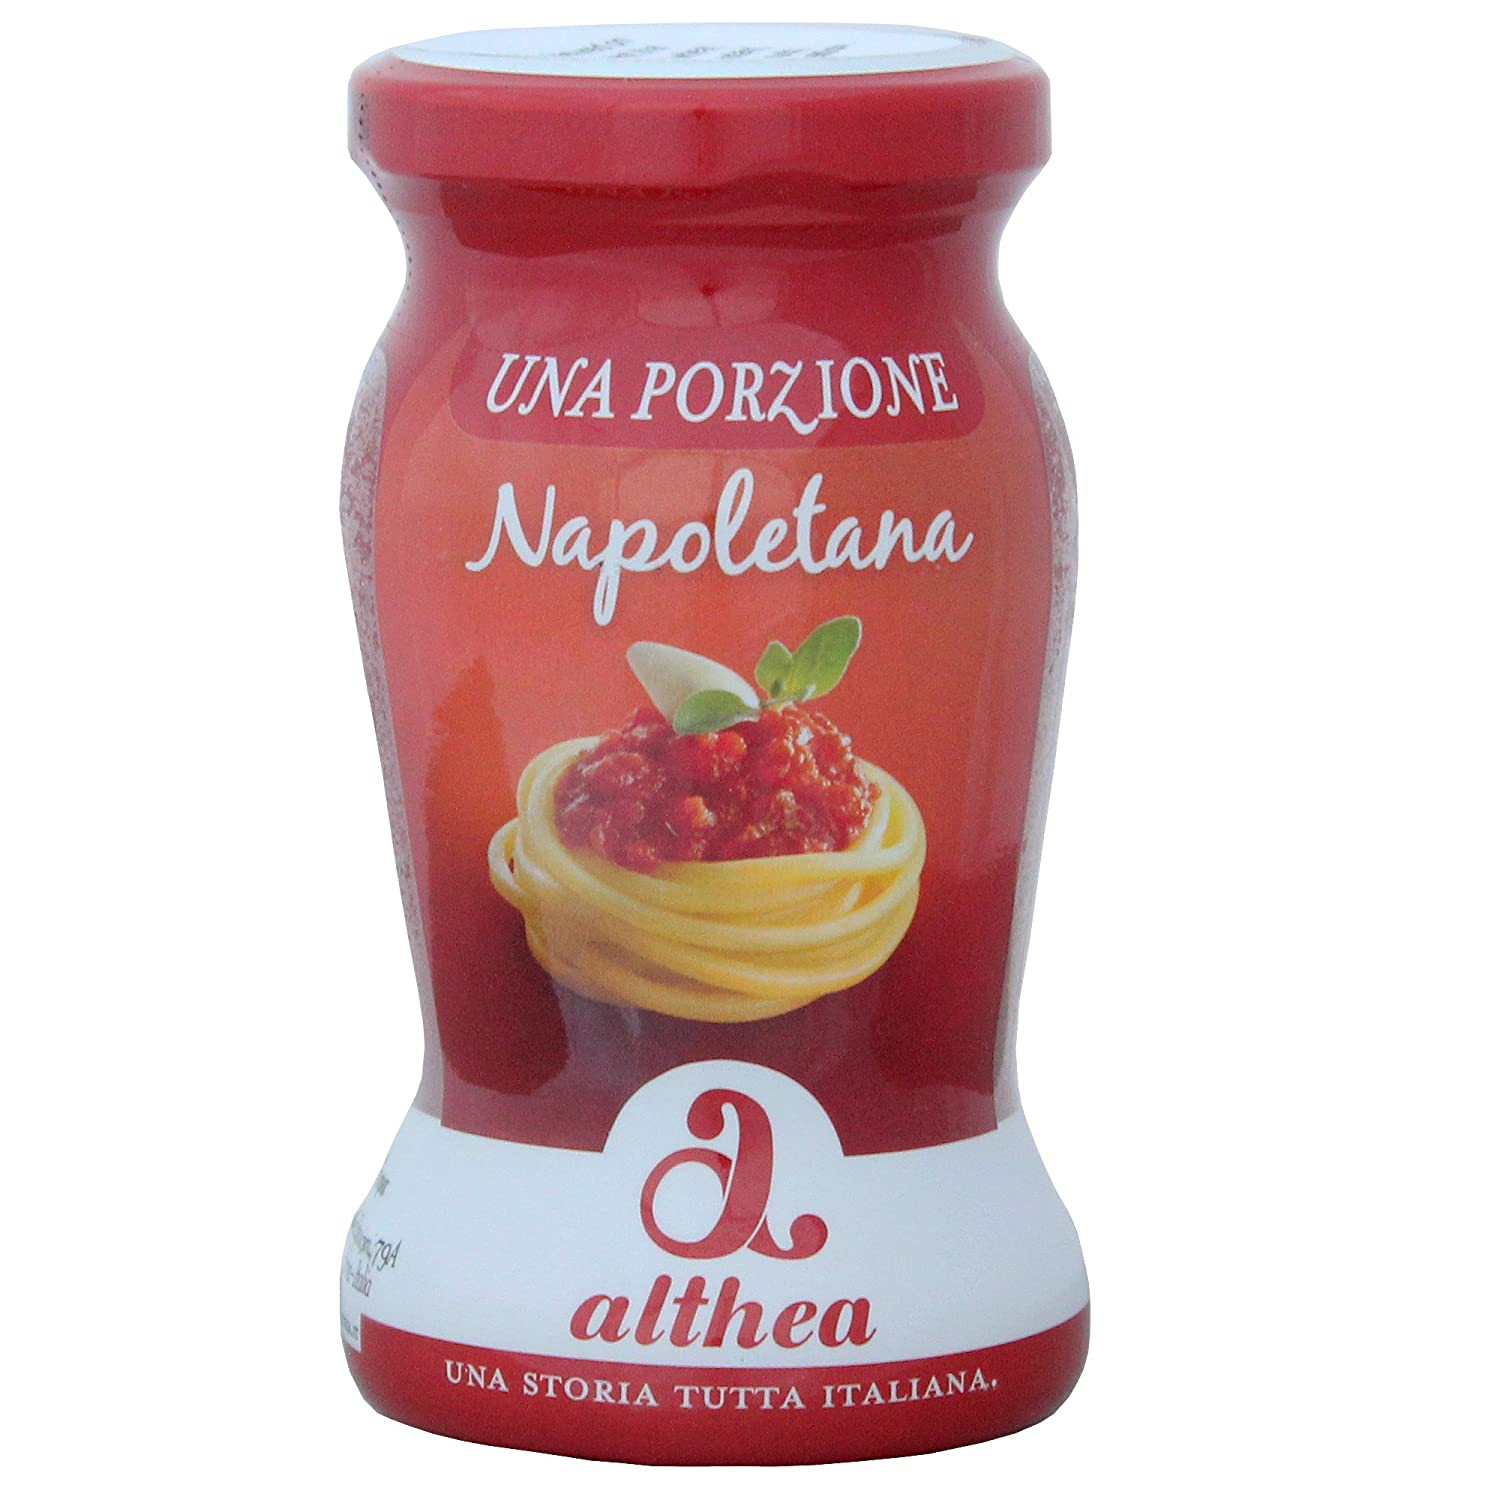 Amazon.com : Althea Napoletana Sauce - single portion - 4.2 oz - 12 Pack : Grocery & Gourmet Food